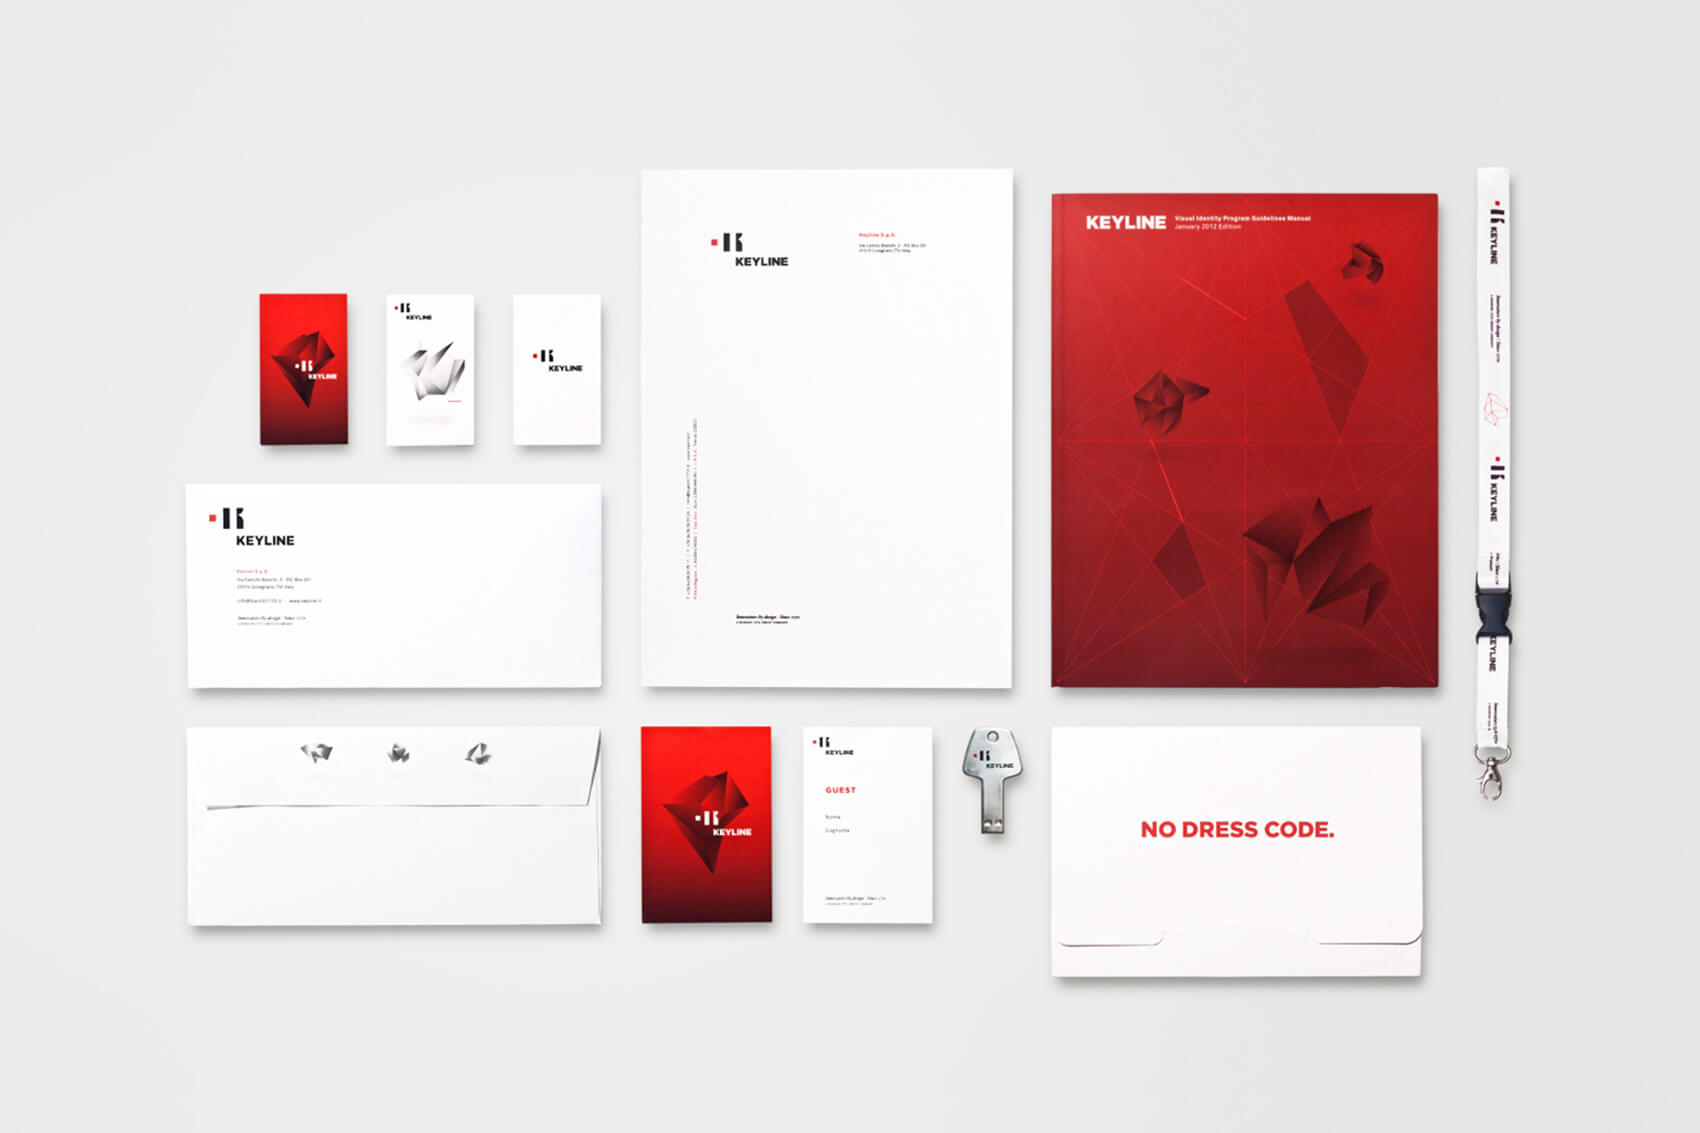 Keyline Visual Identity Samples